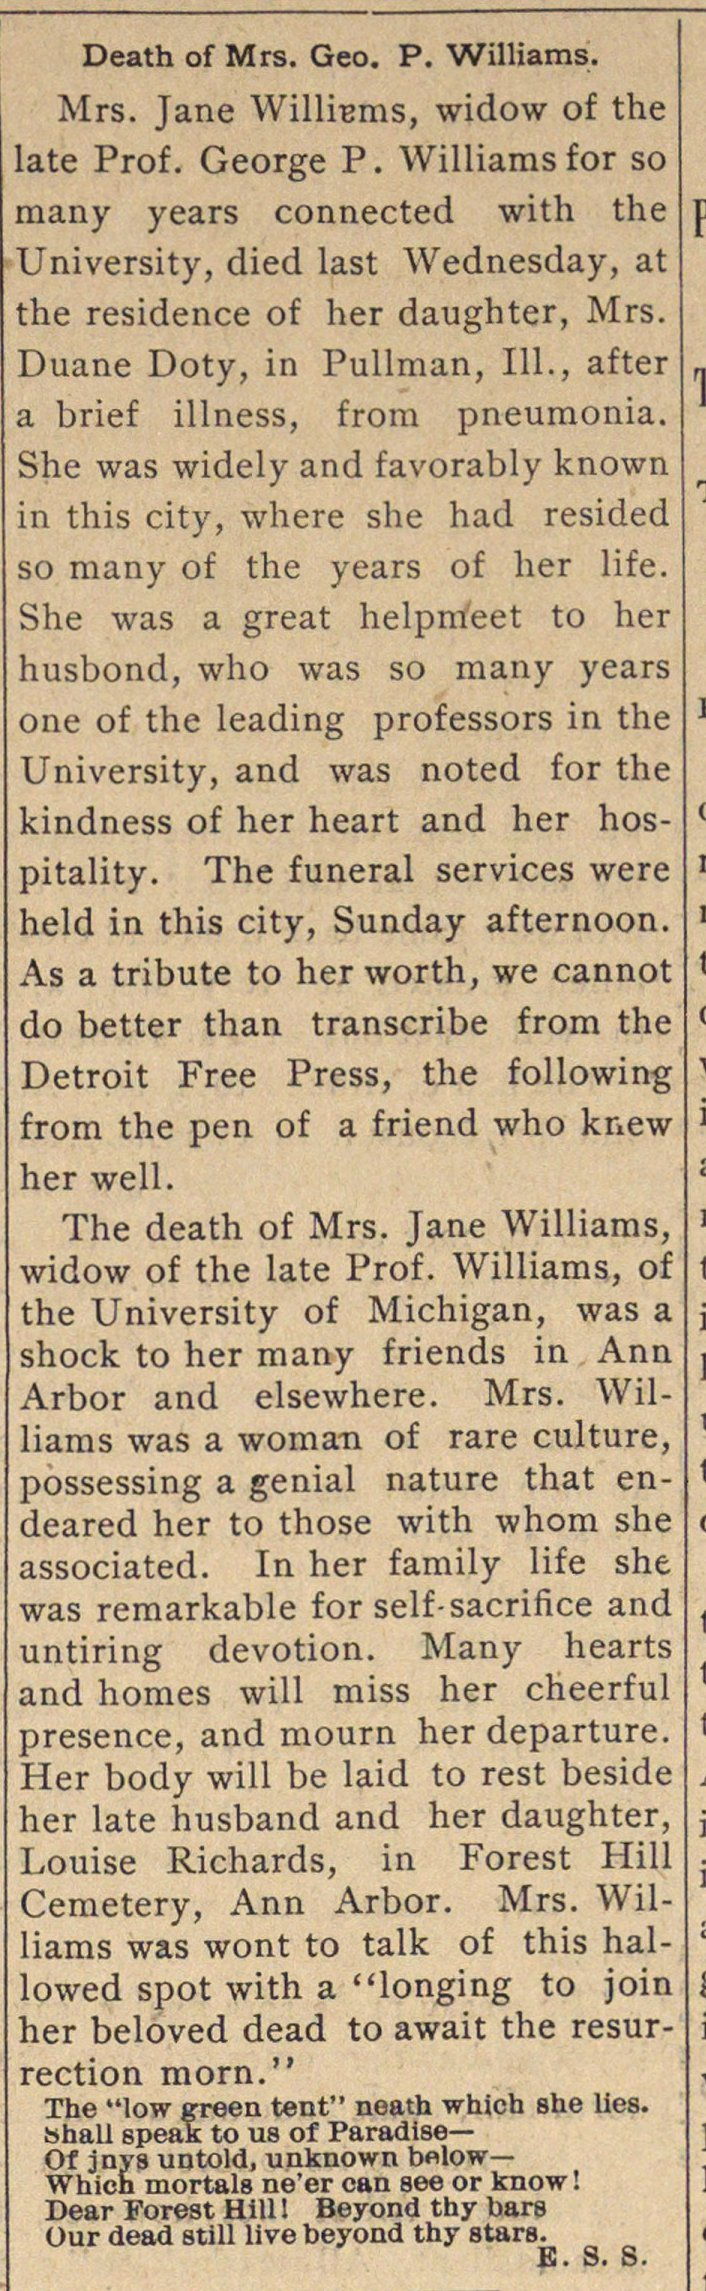 Death Of Mrs. Geo. P. Williams image